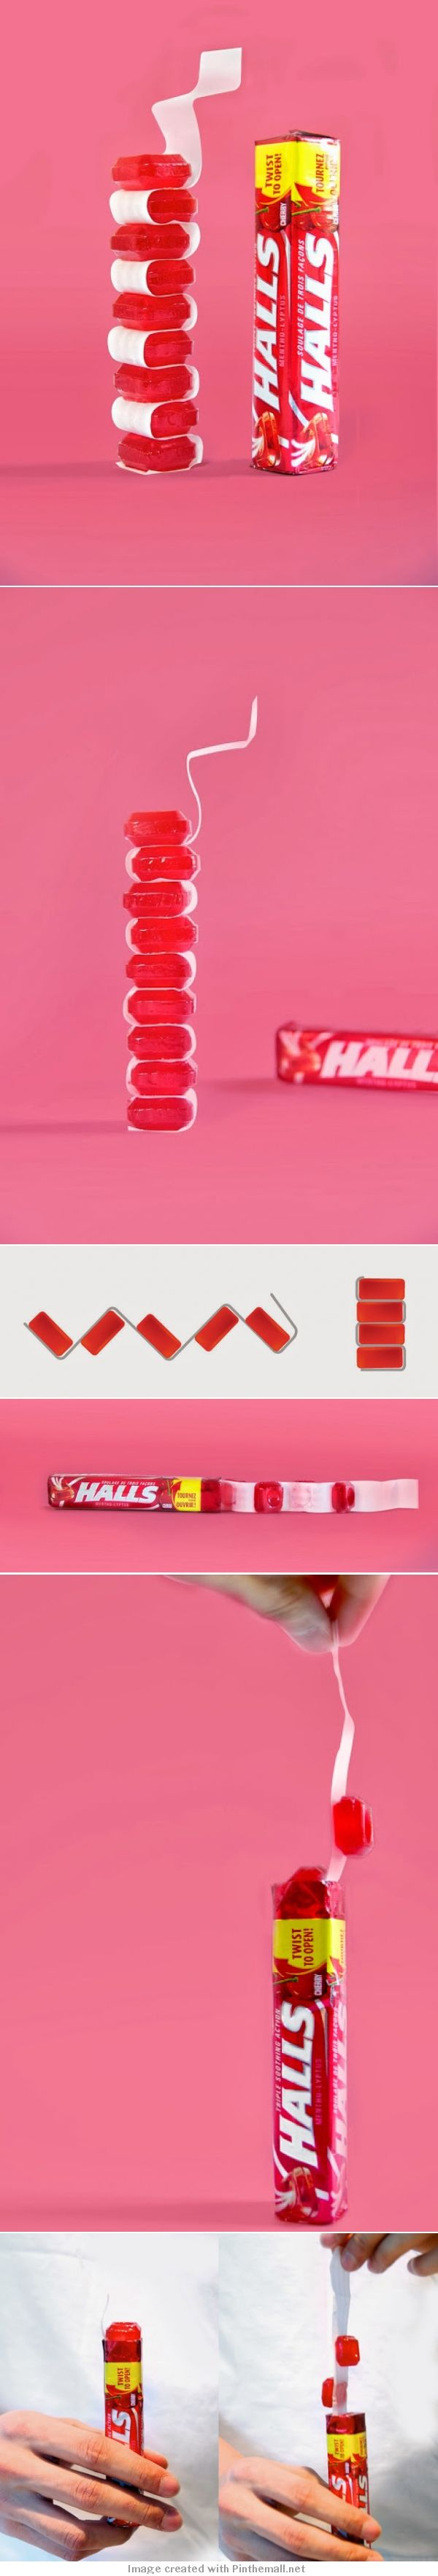 Packaging that WORKS, this is beautiful // Halls Packaging (Concept)